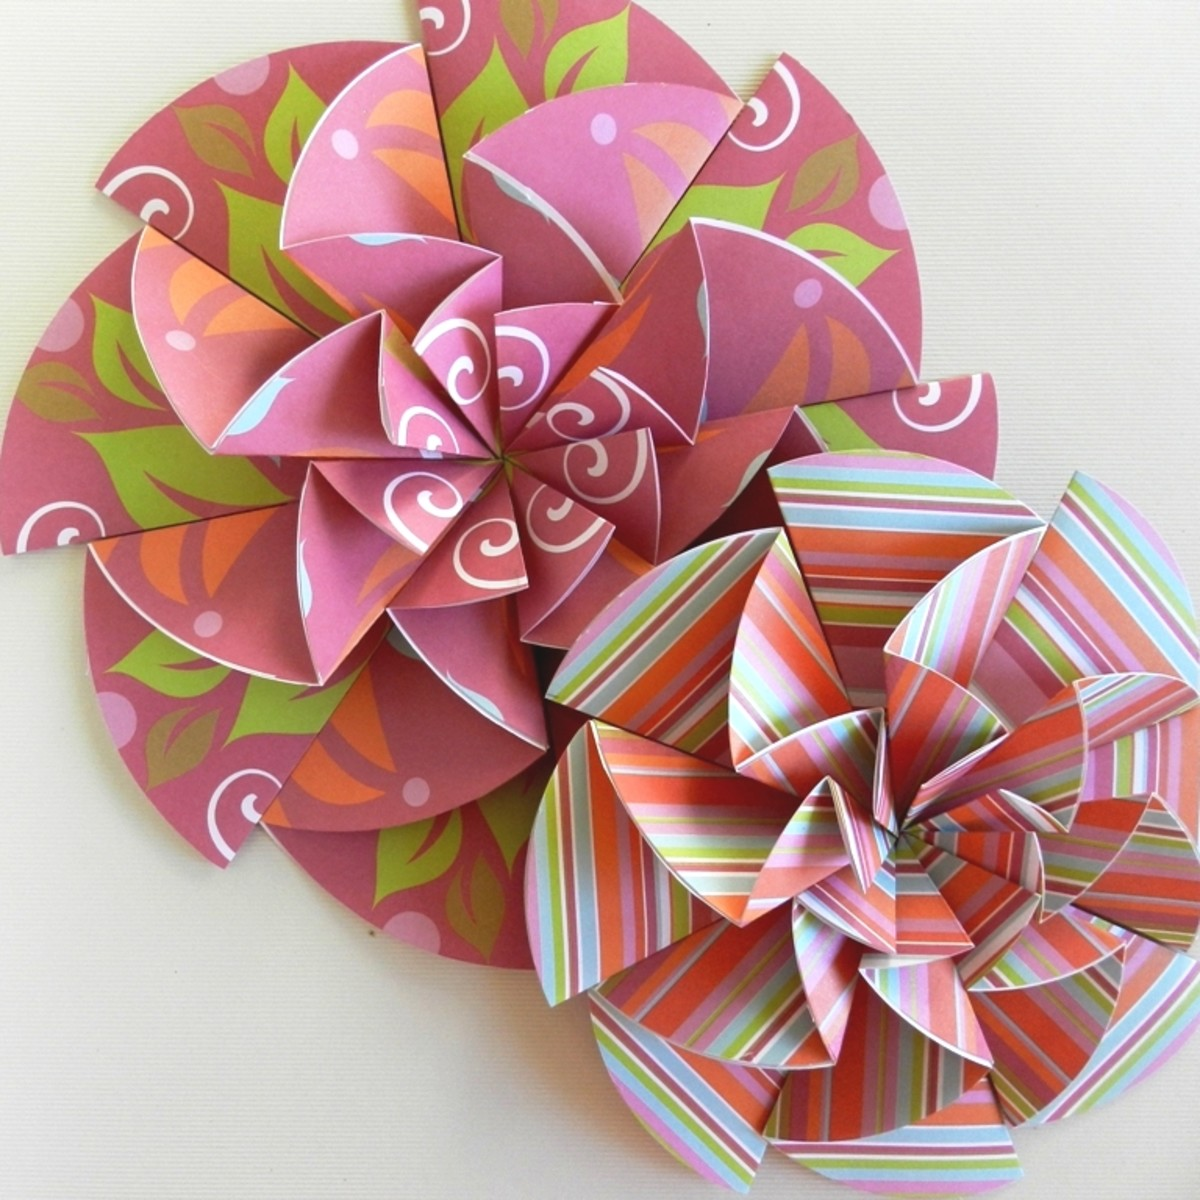 How to make paper rosettes for party decor feltmagnet stunning paper rosettes for party decor mightylinksfo